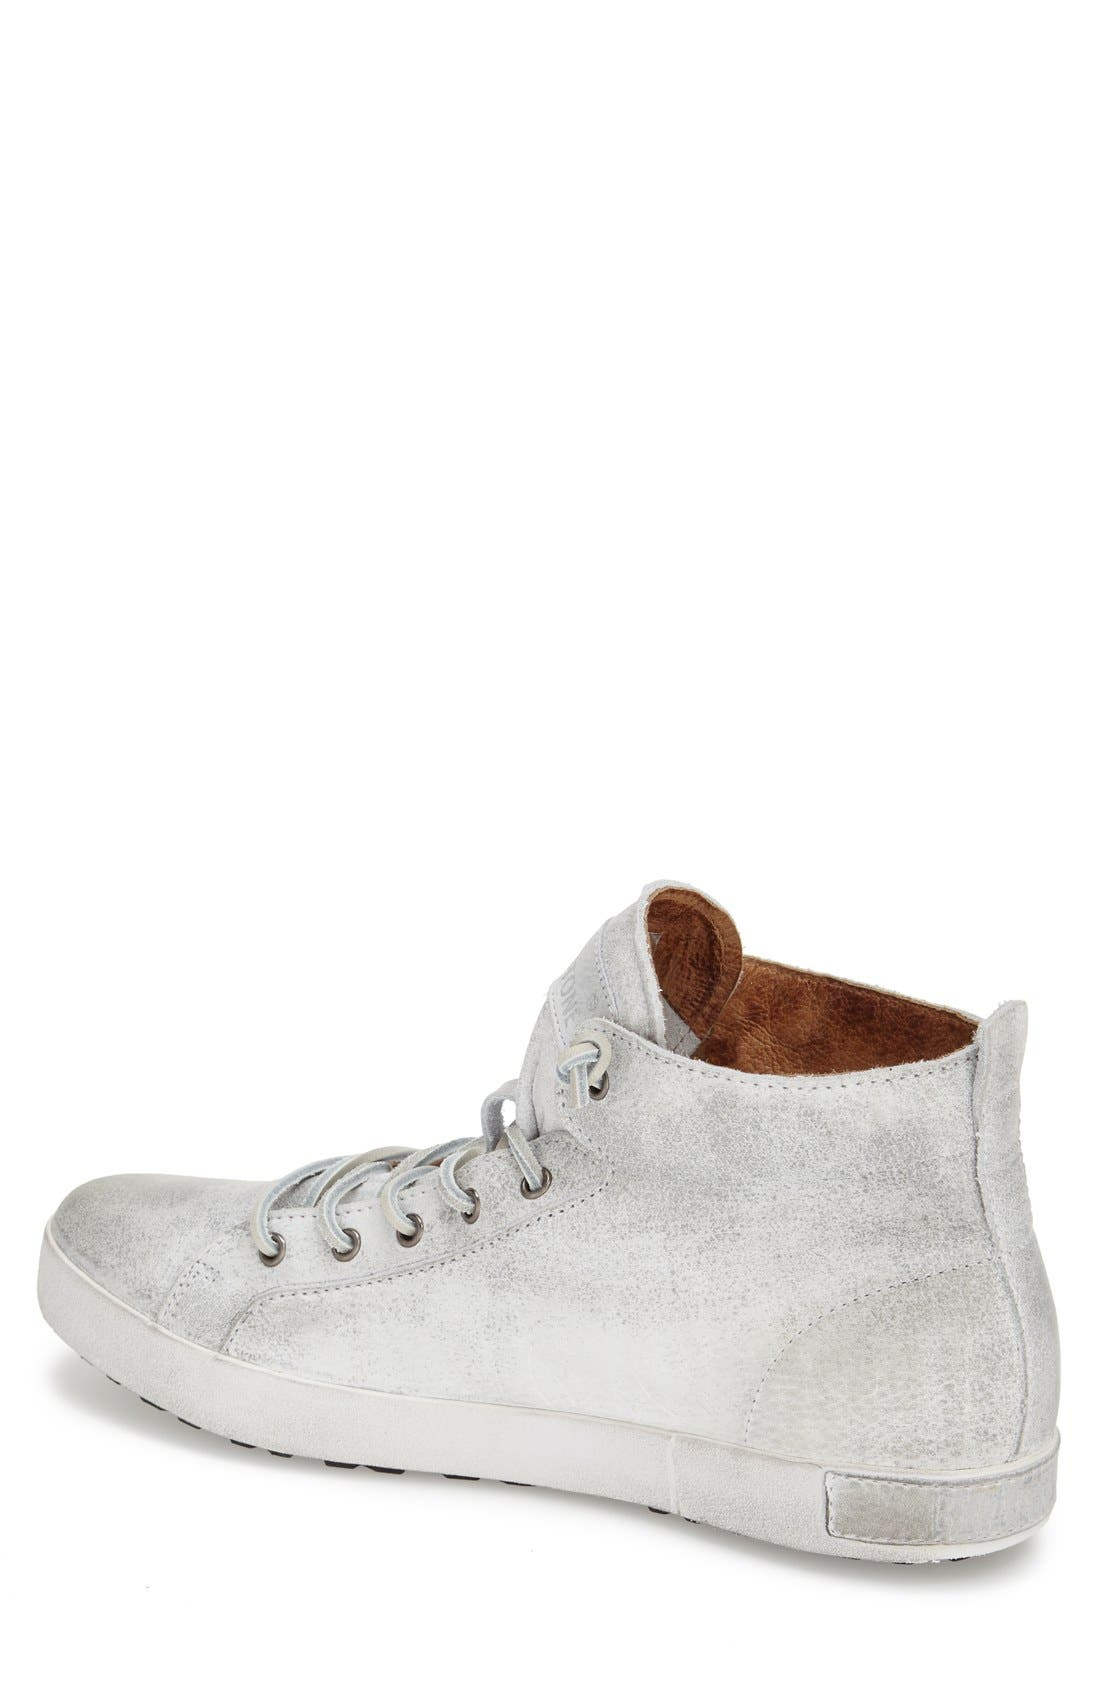 'JM 02' High Top Sneaker,                             Alternate thumbnail 2, color,                             White Leather